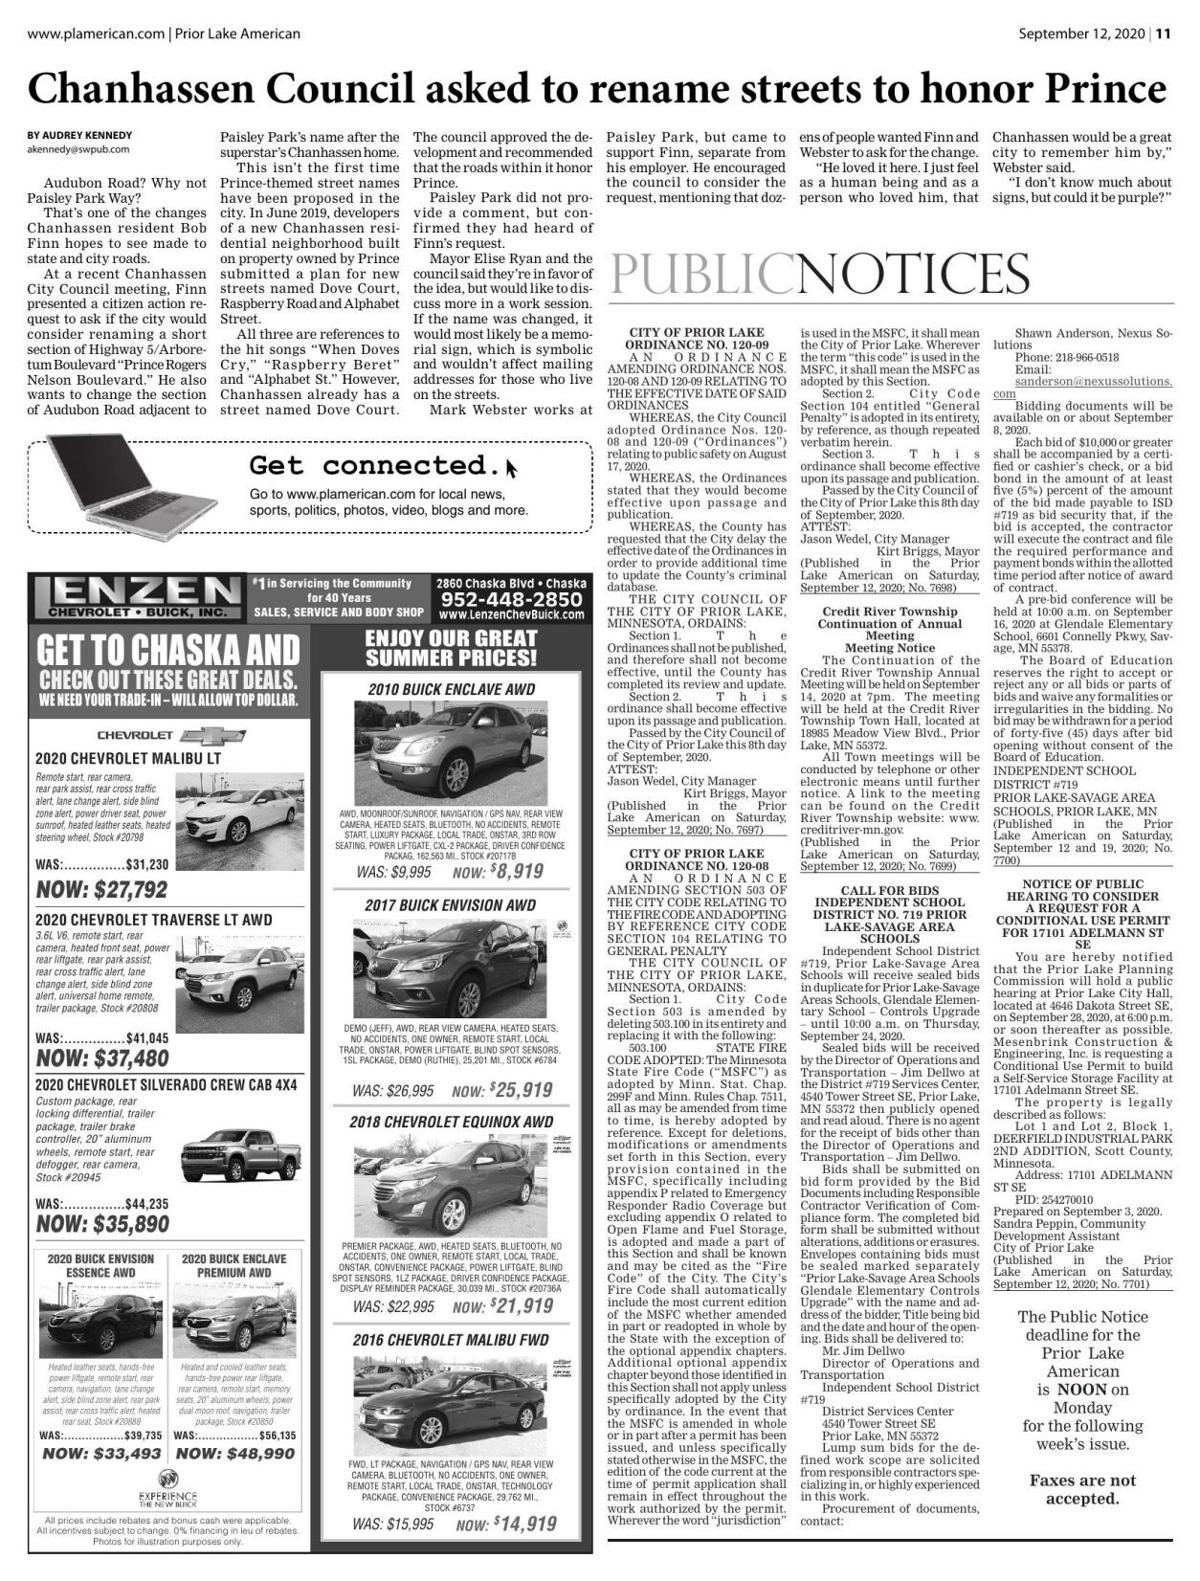 Public Notices from September 12, 2020